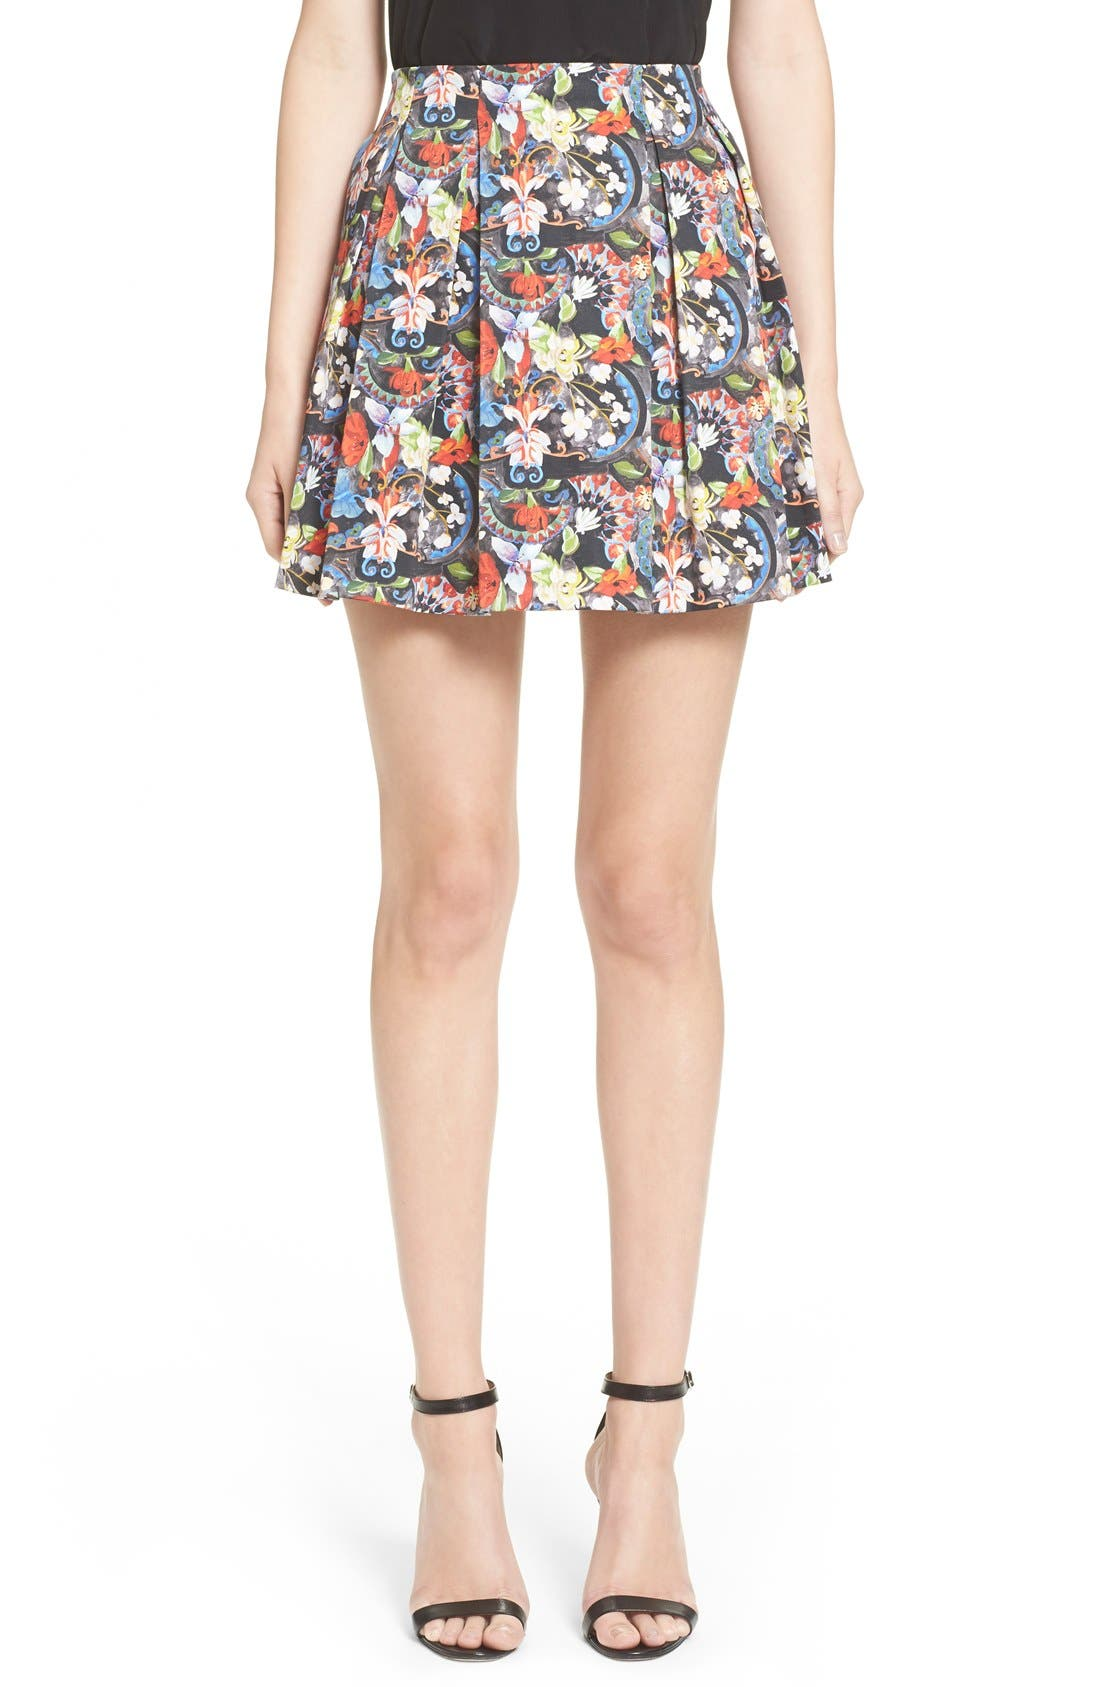 ALICE + OLIVIA, 'Parson' Floral Print Pleated Miniskirt, Main thumbnail 1, color, 605